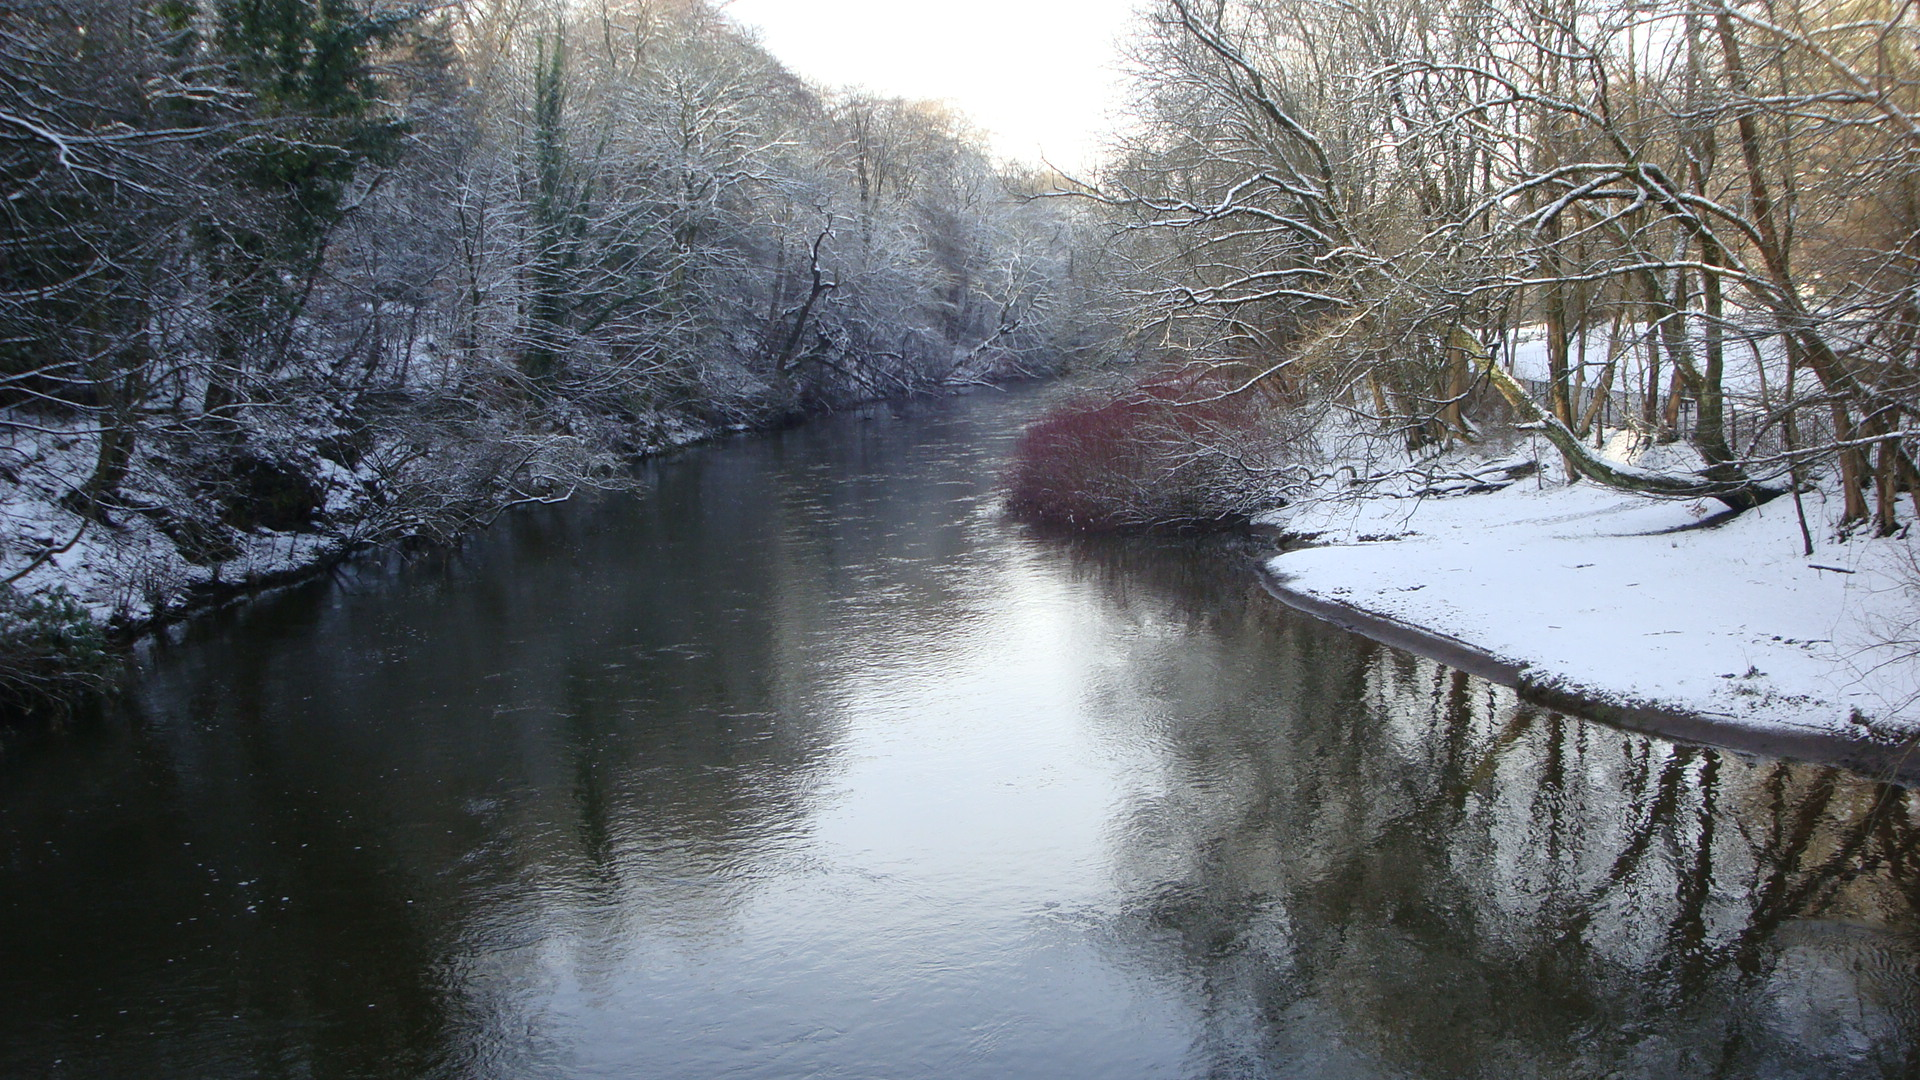 The Kelvin river